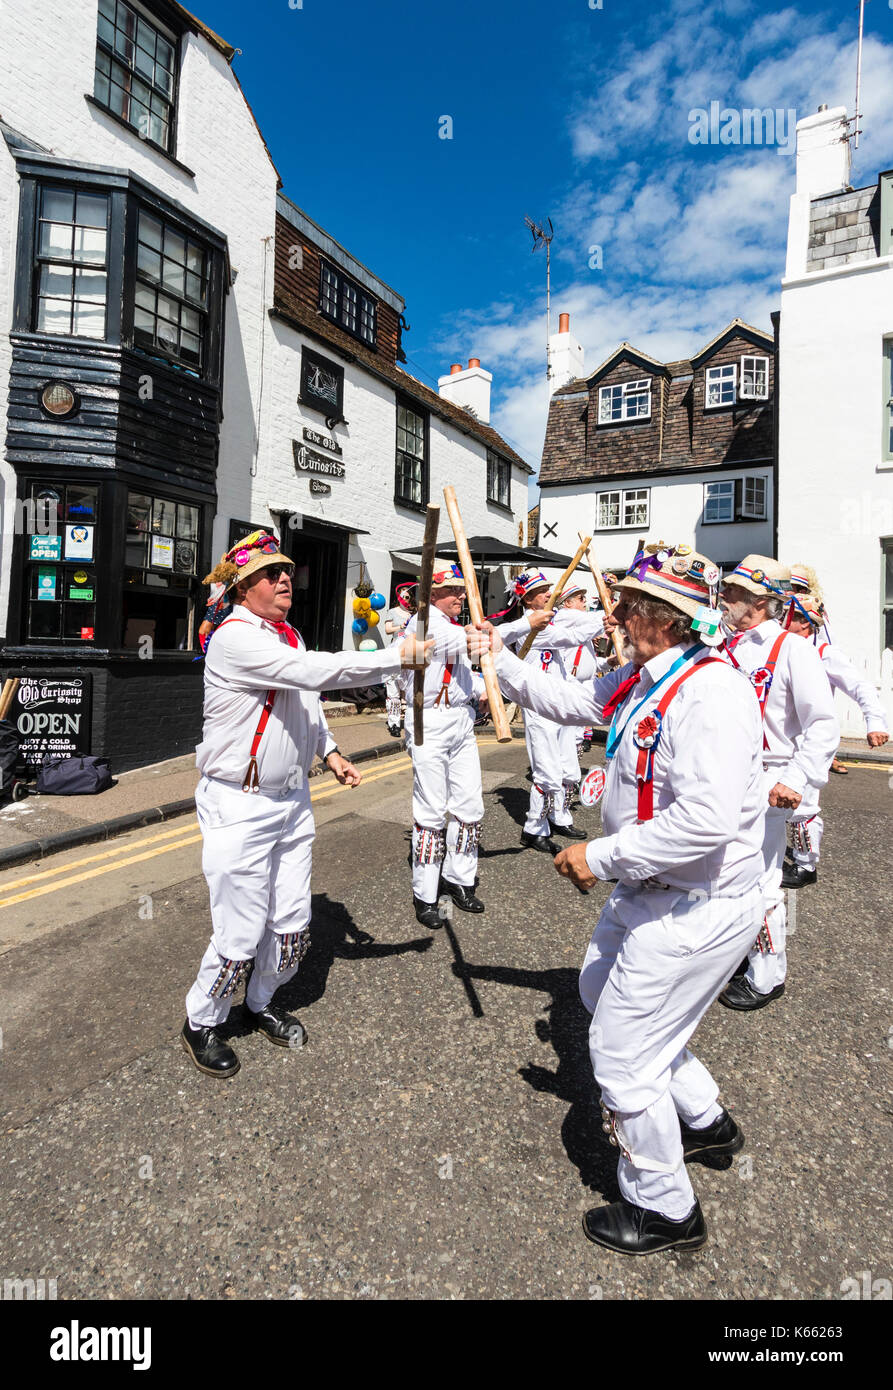 Hartley Morris dancers, in white trousers and shirts, red braces, straw hats, dancing and holding wooden poles by the Old curiosity Shop, Broadstairs. - Stock Image